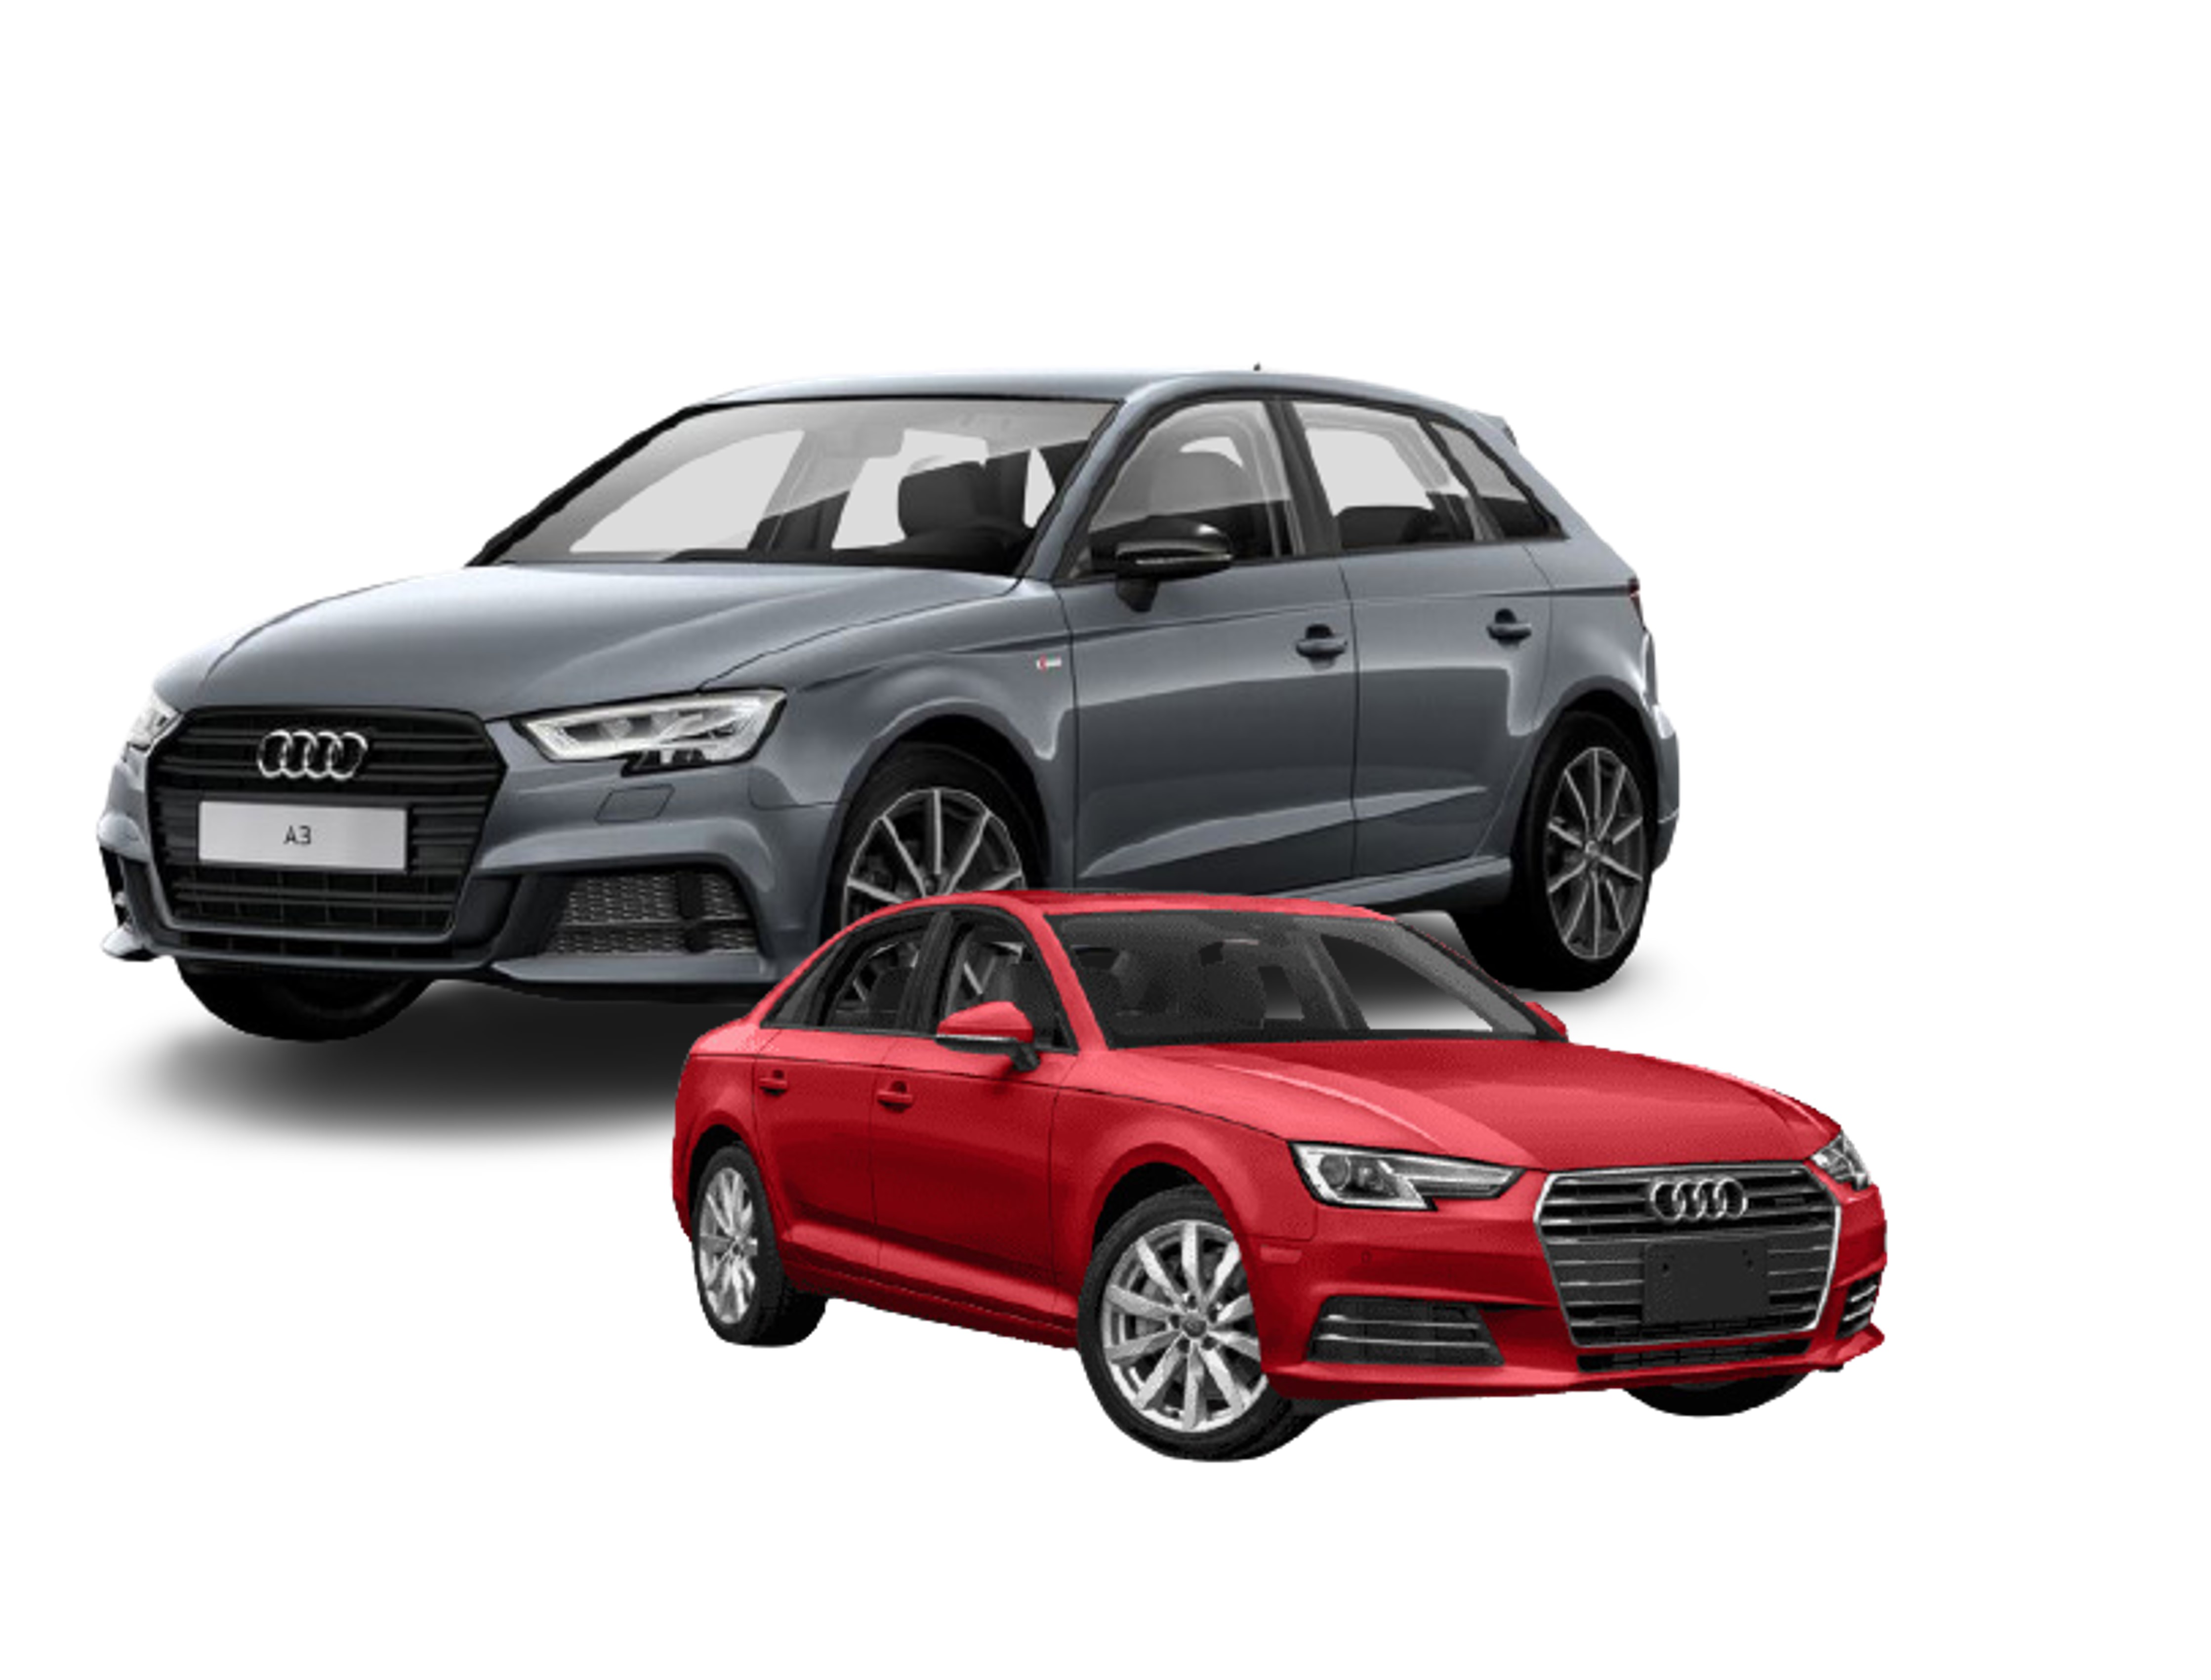 Purchase an Audi pre-owned vehicle and get a 1 year/ 25 000km Audi Freeway Plan banner